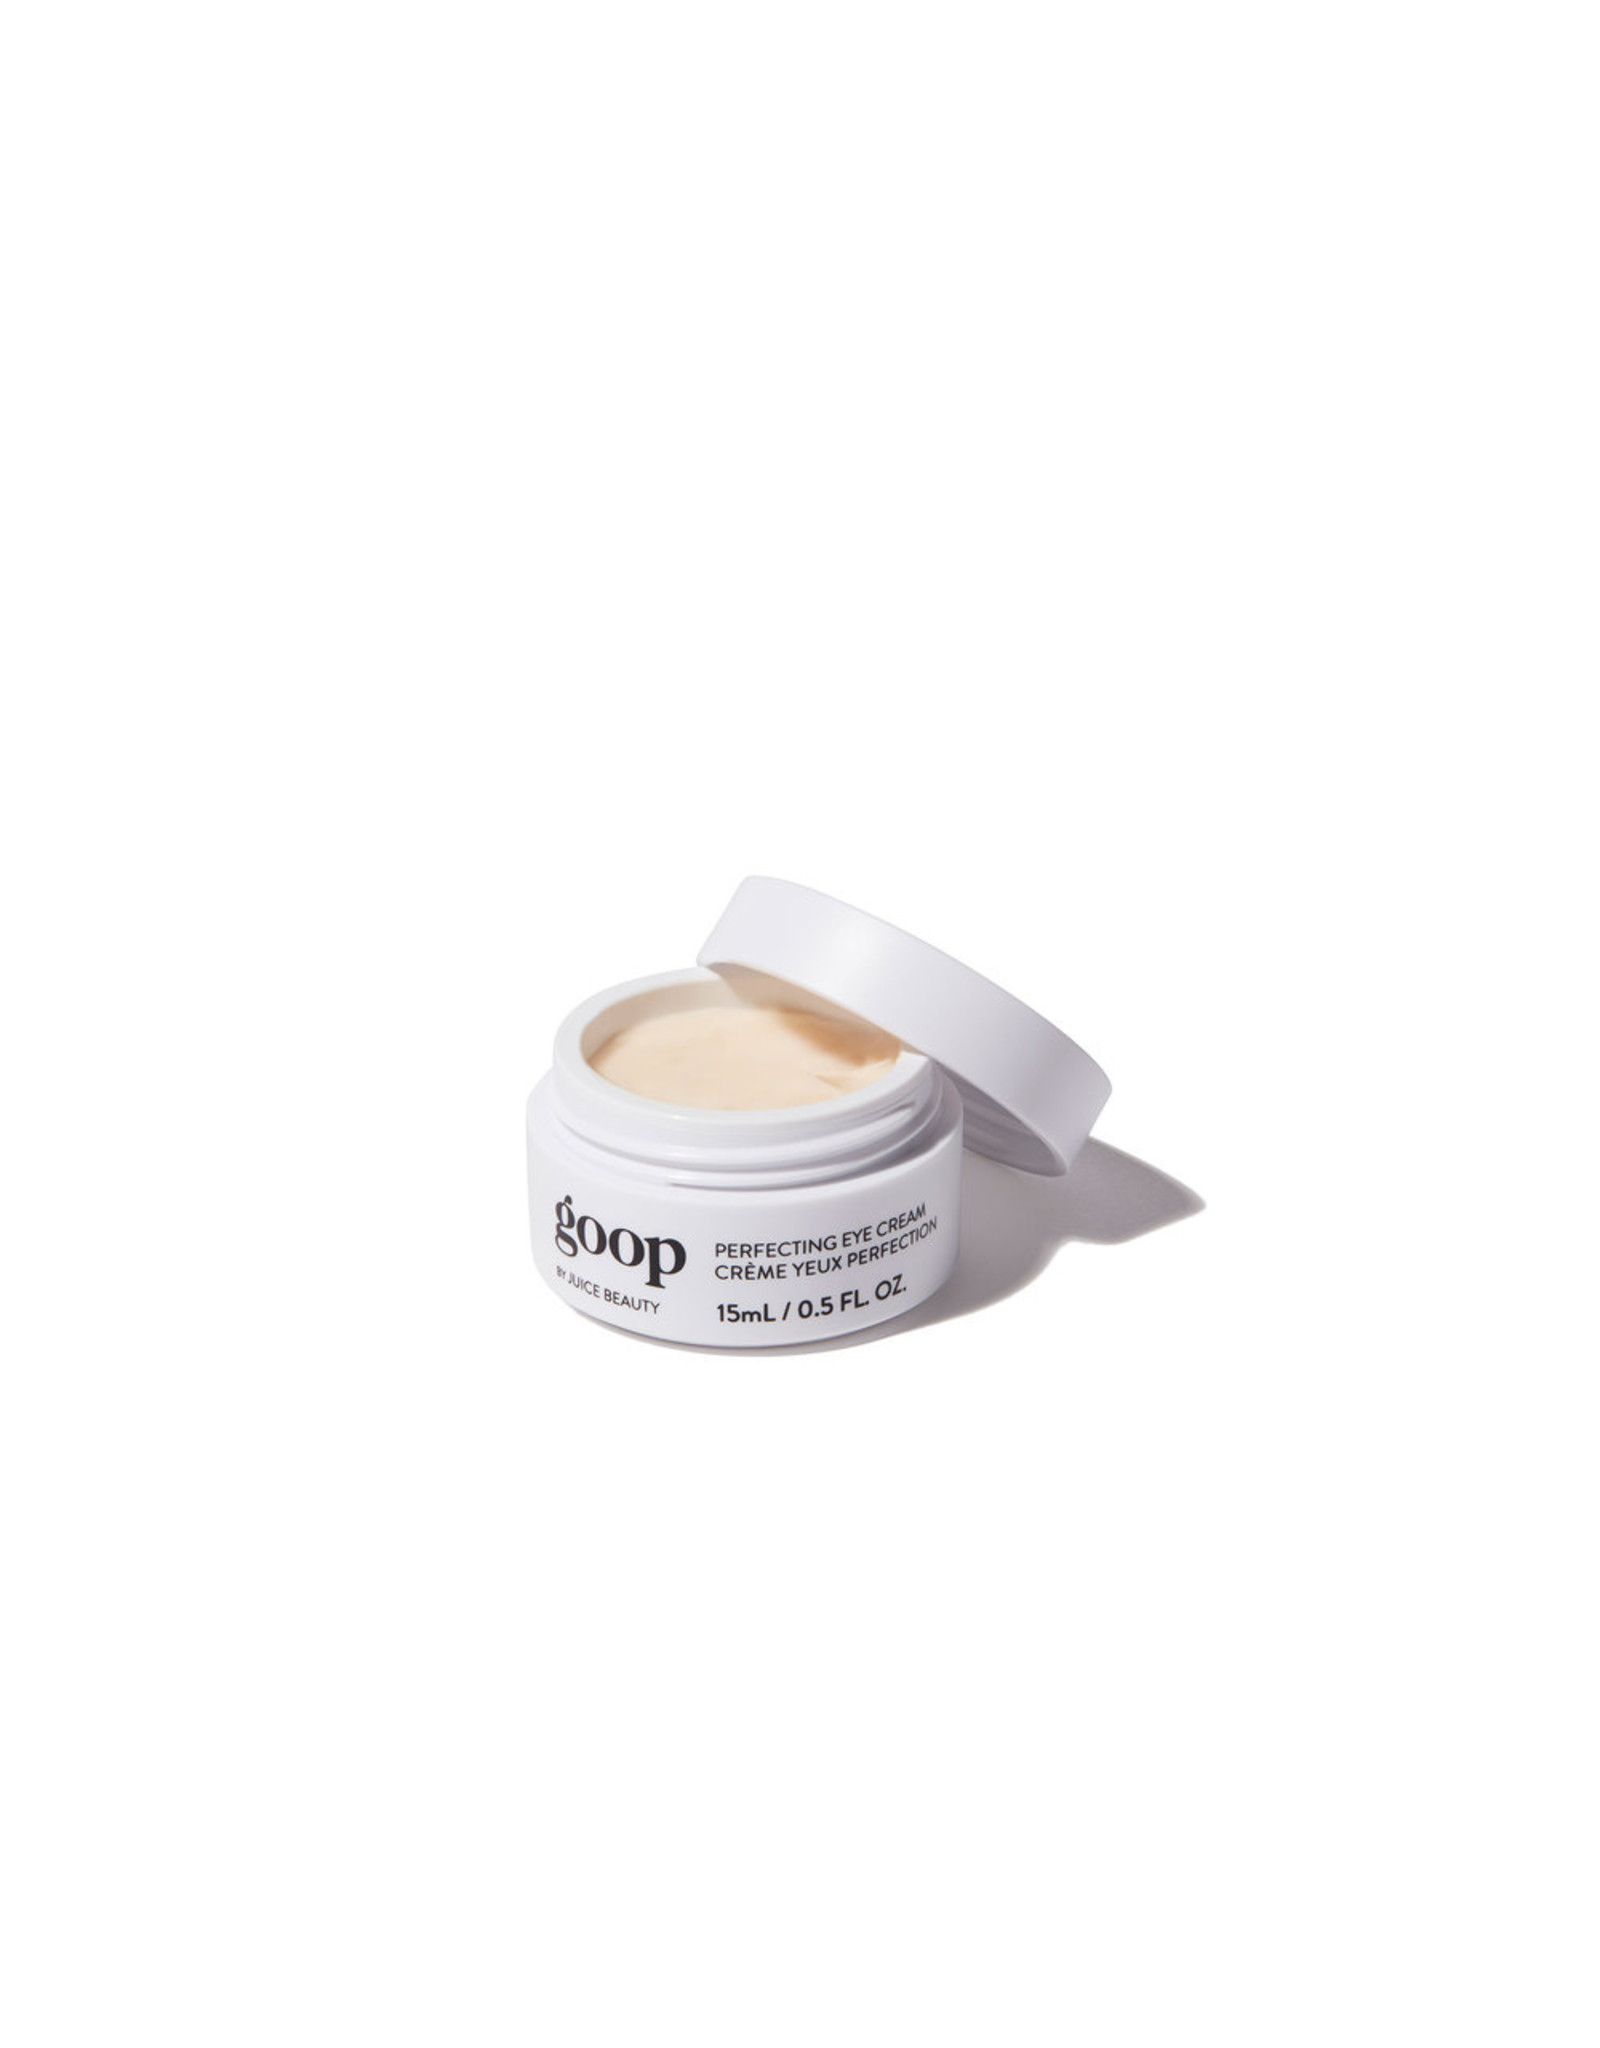 Goop by Juice Beauty goop Beauty Perfecting Eye Cream